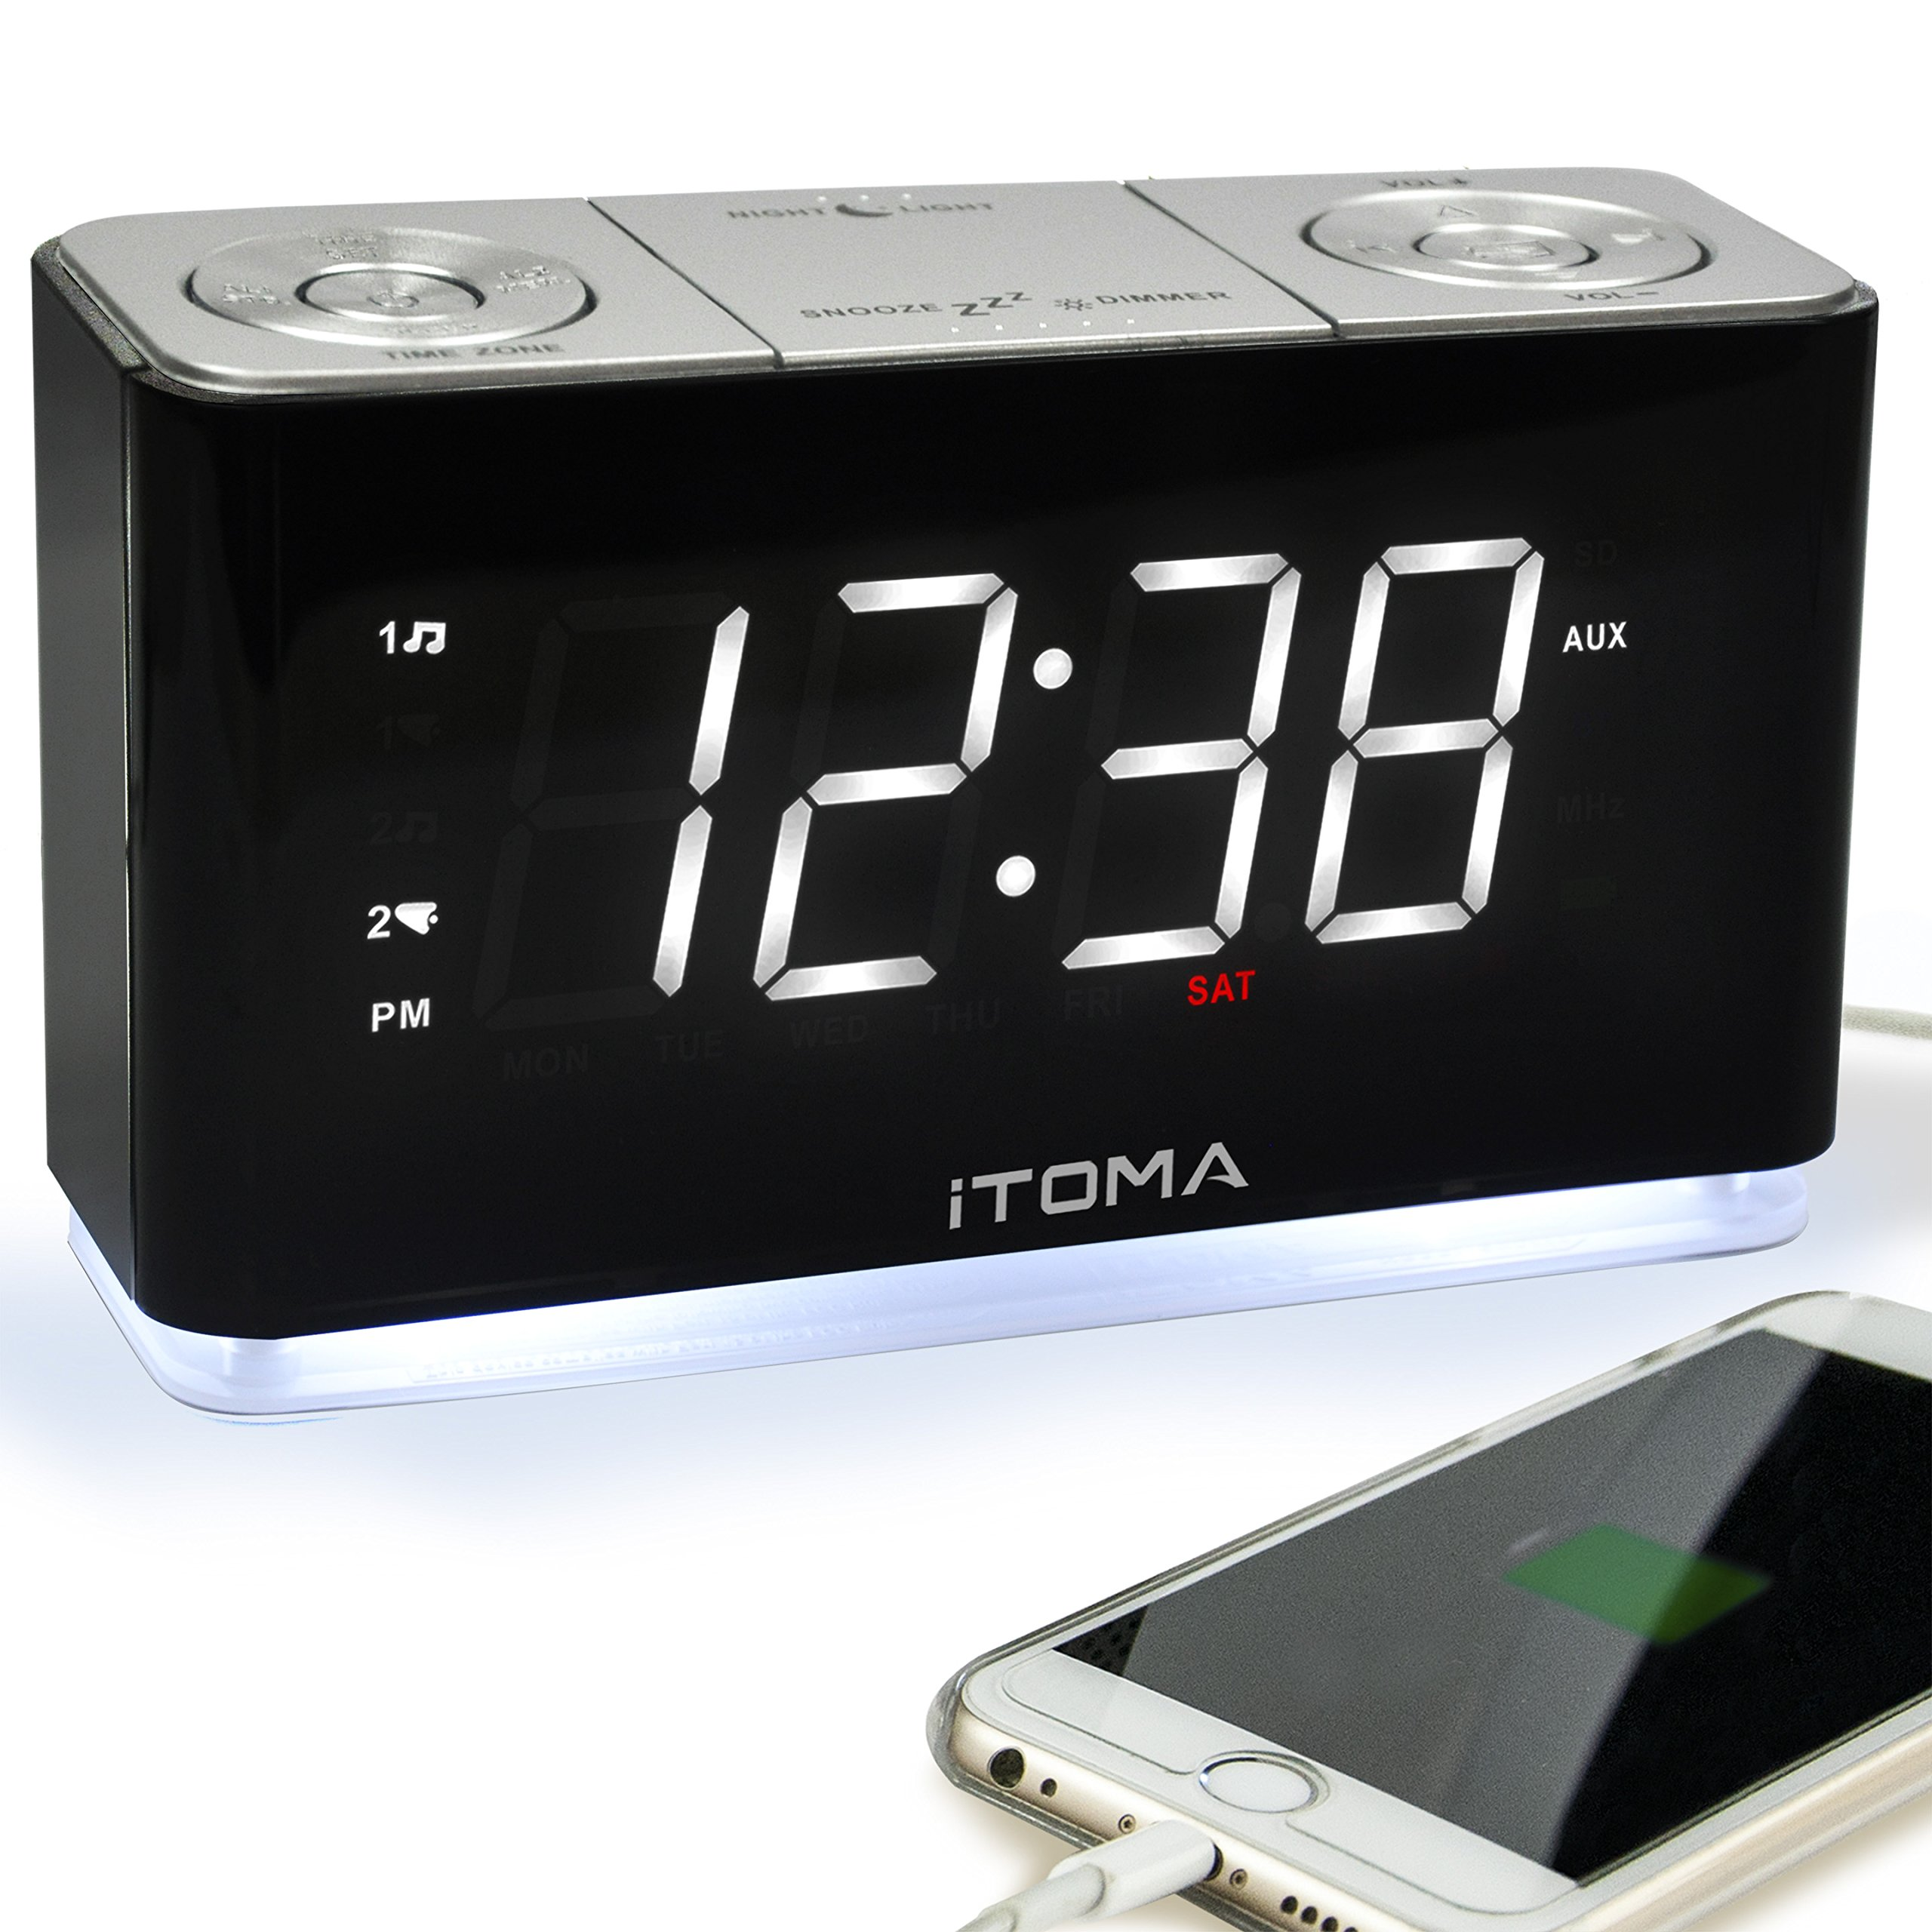 iTOMA Alarm Clock Radio, Digital FM Radio, Dual Alarm, Cell Phone USB Charge Port, Night Light, Auto & Manual Dimmer, Snooze, Sleep Timer, AUX-in, Backup Battery (CKS507) by iTOMA